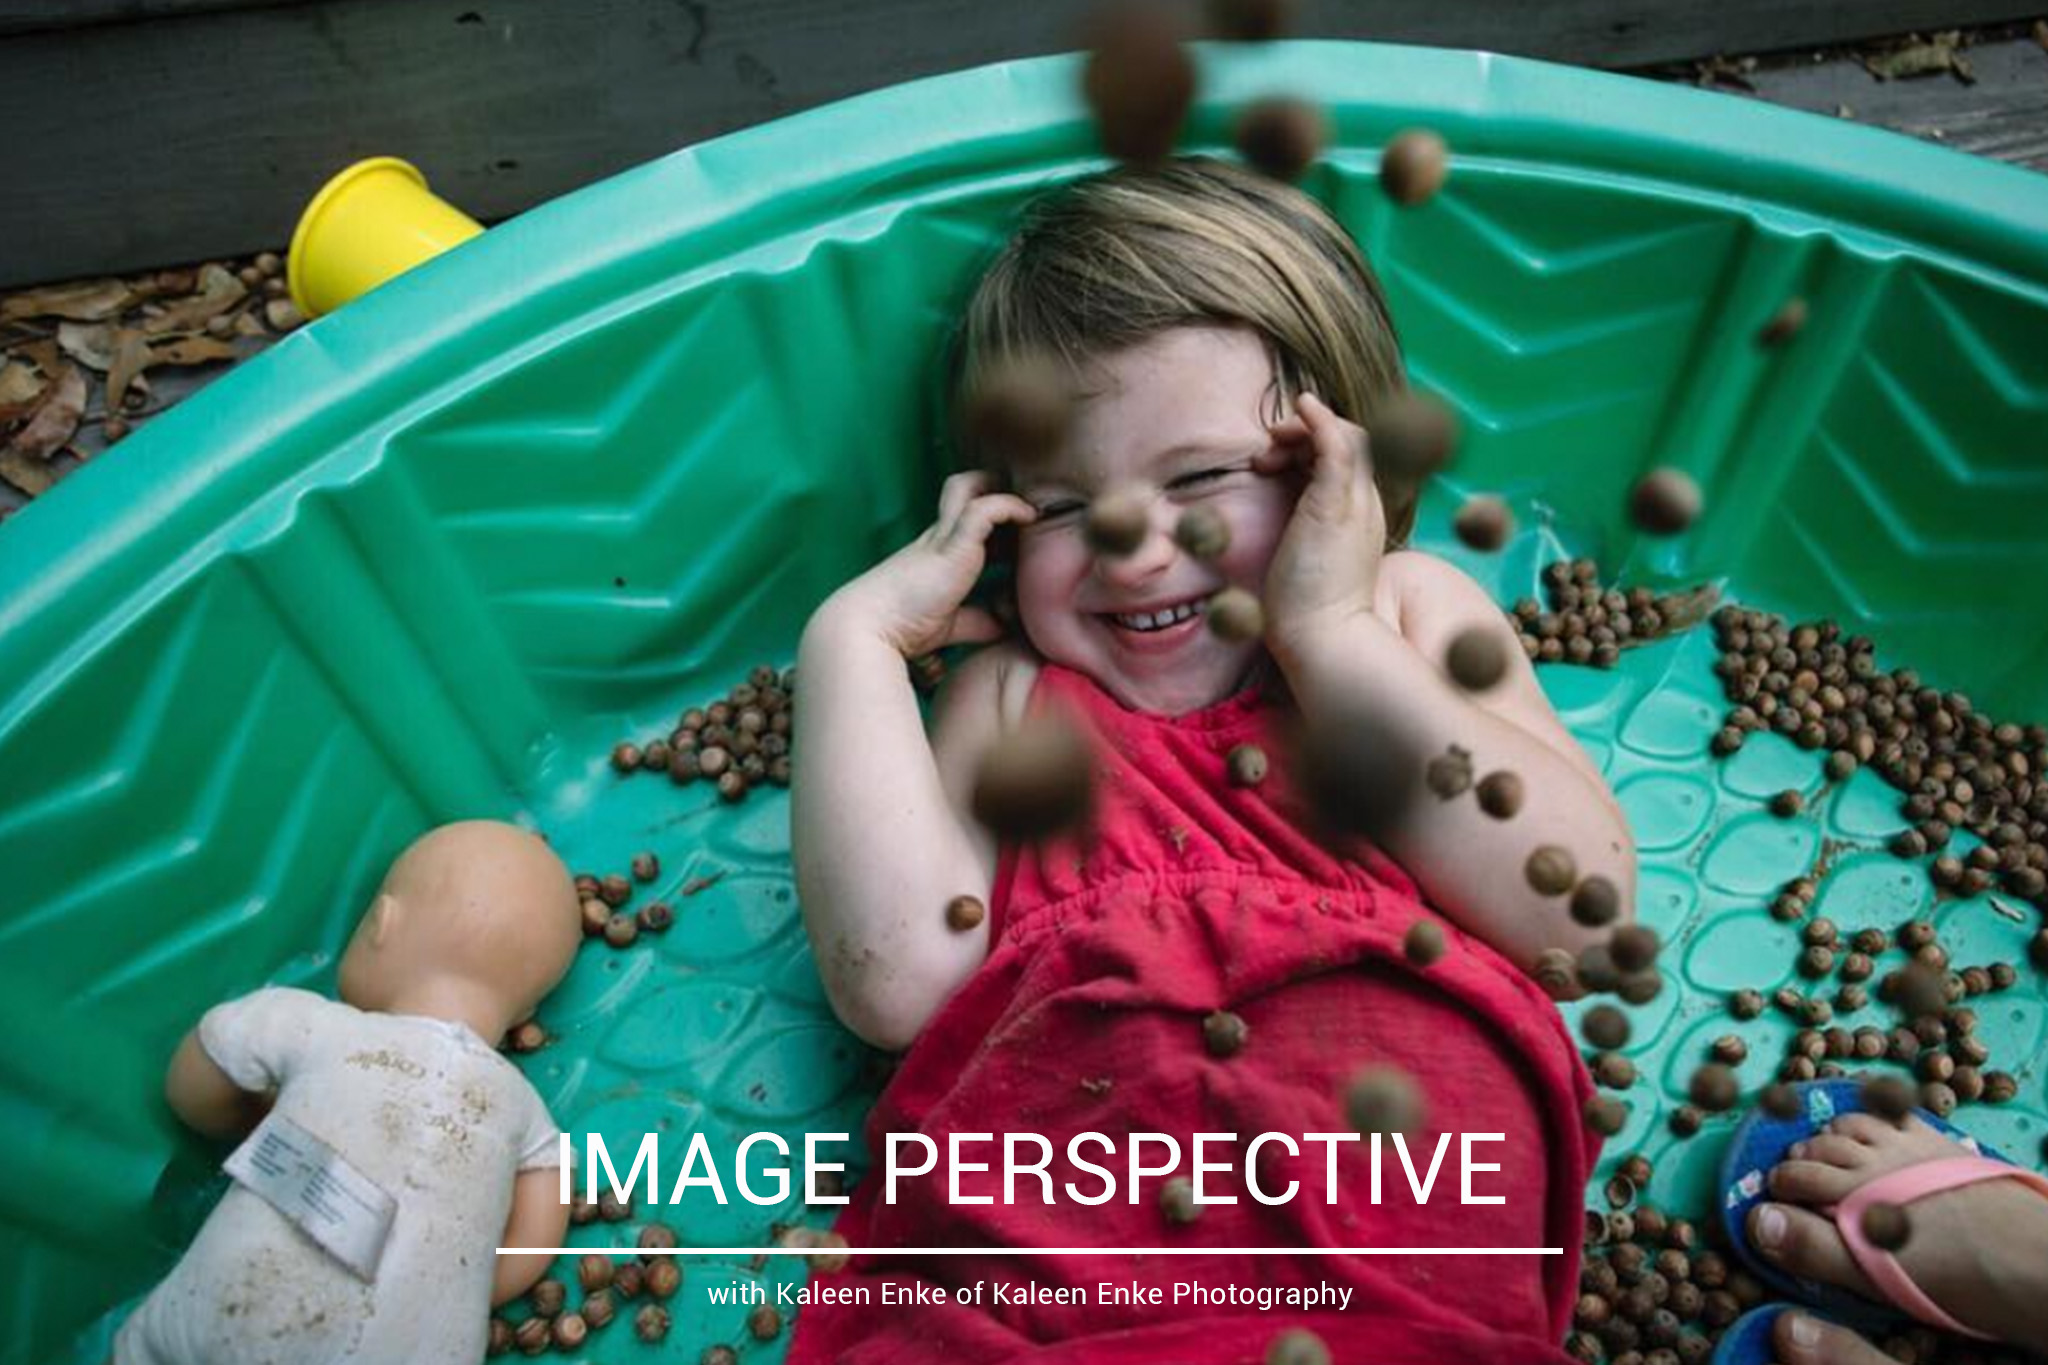 image from above of girl smiling while acorns are falling on her